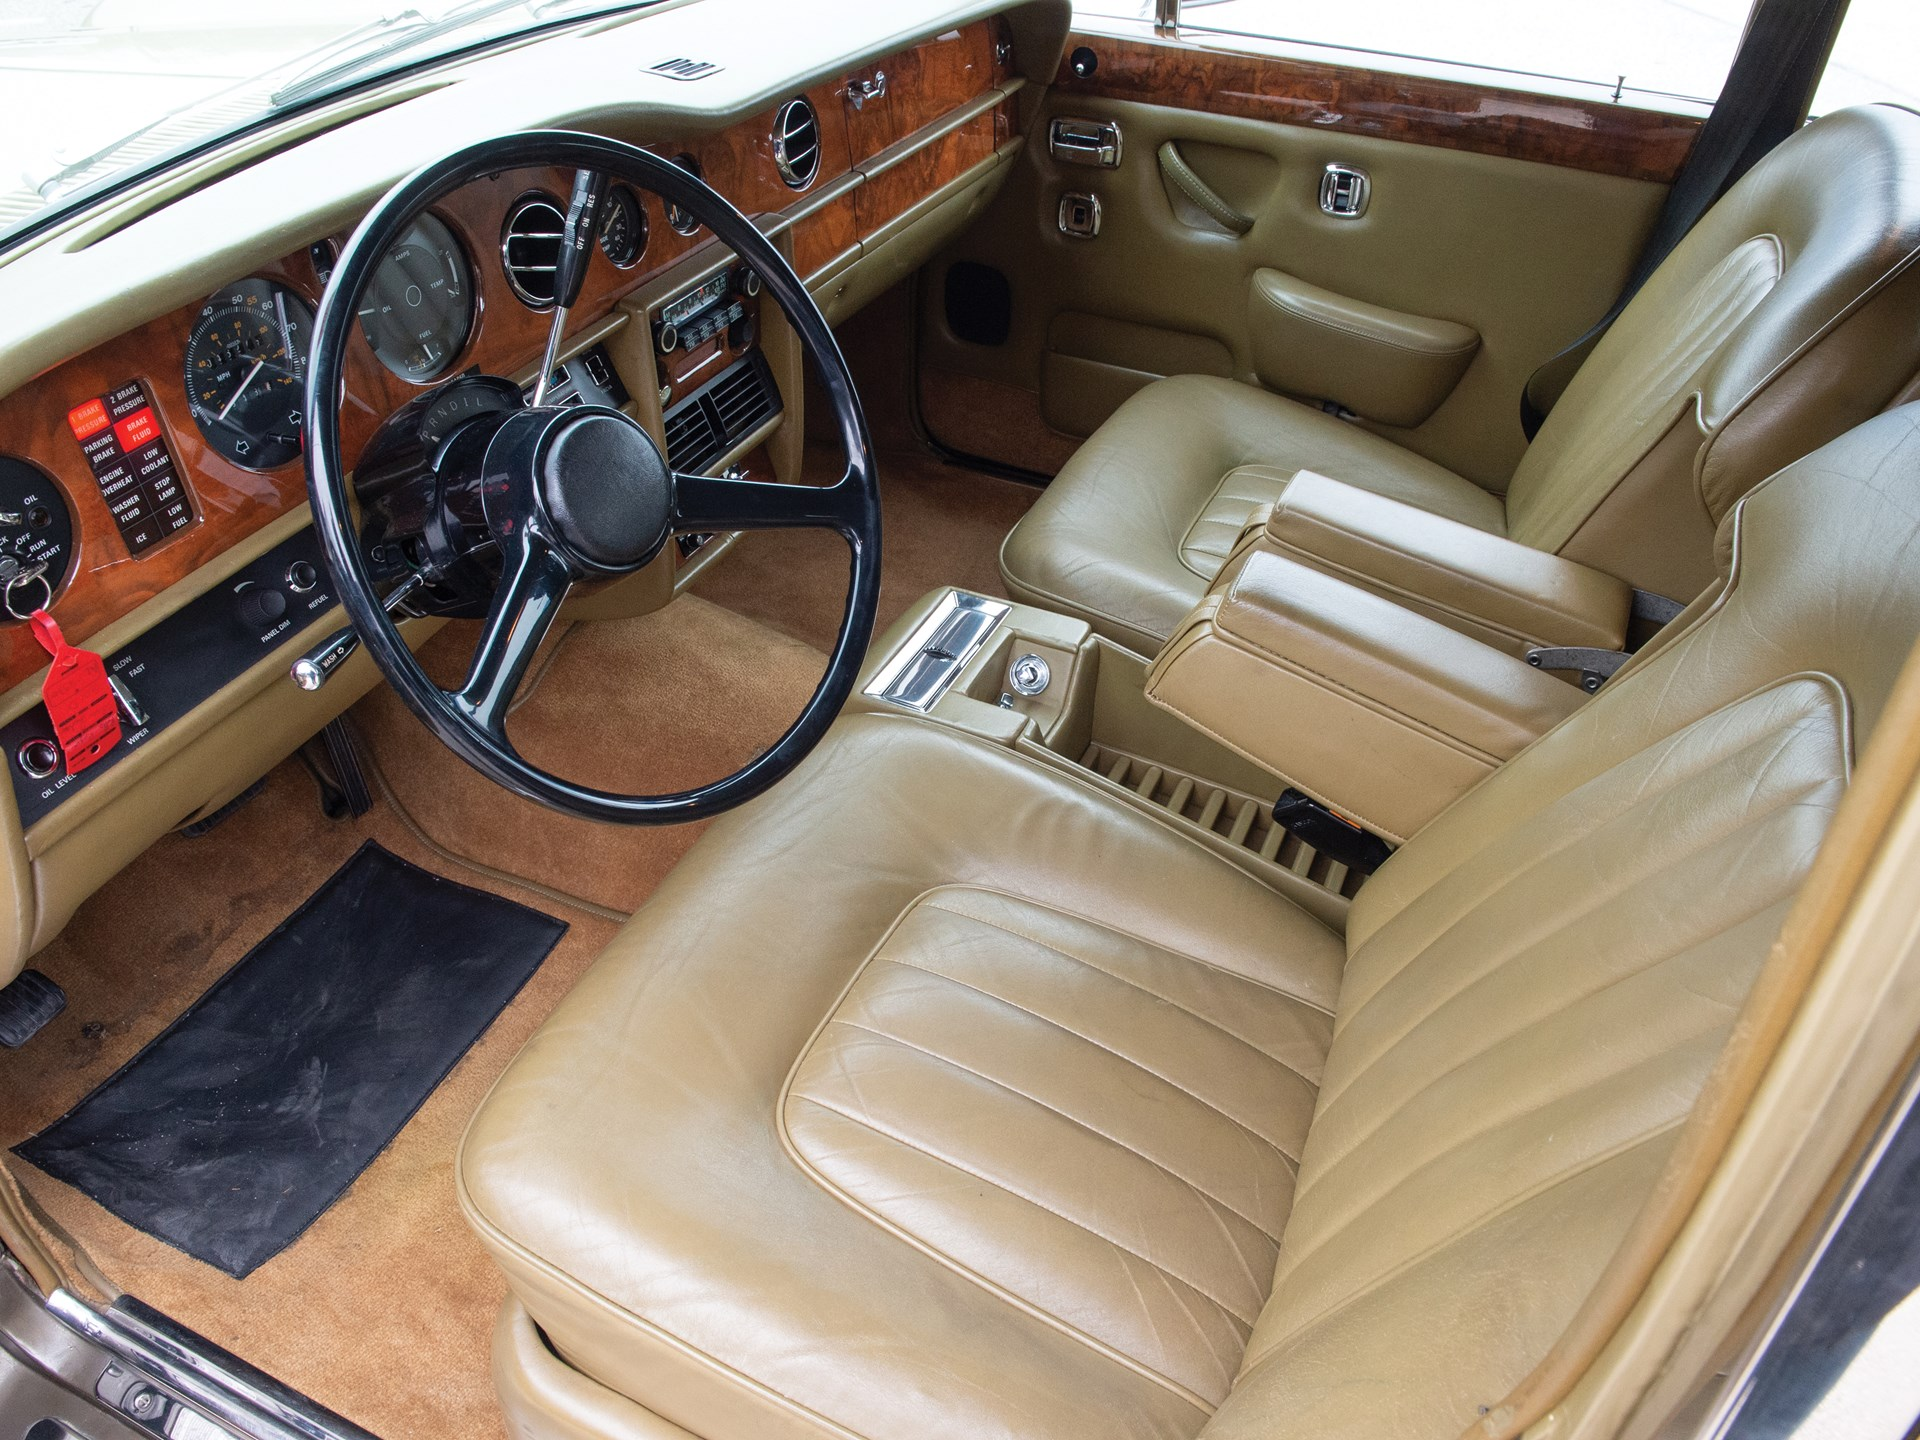 1979 Rolls-Royce Silver Shadow interior